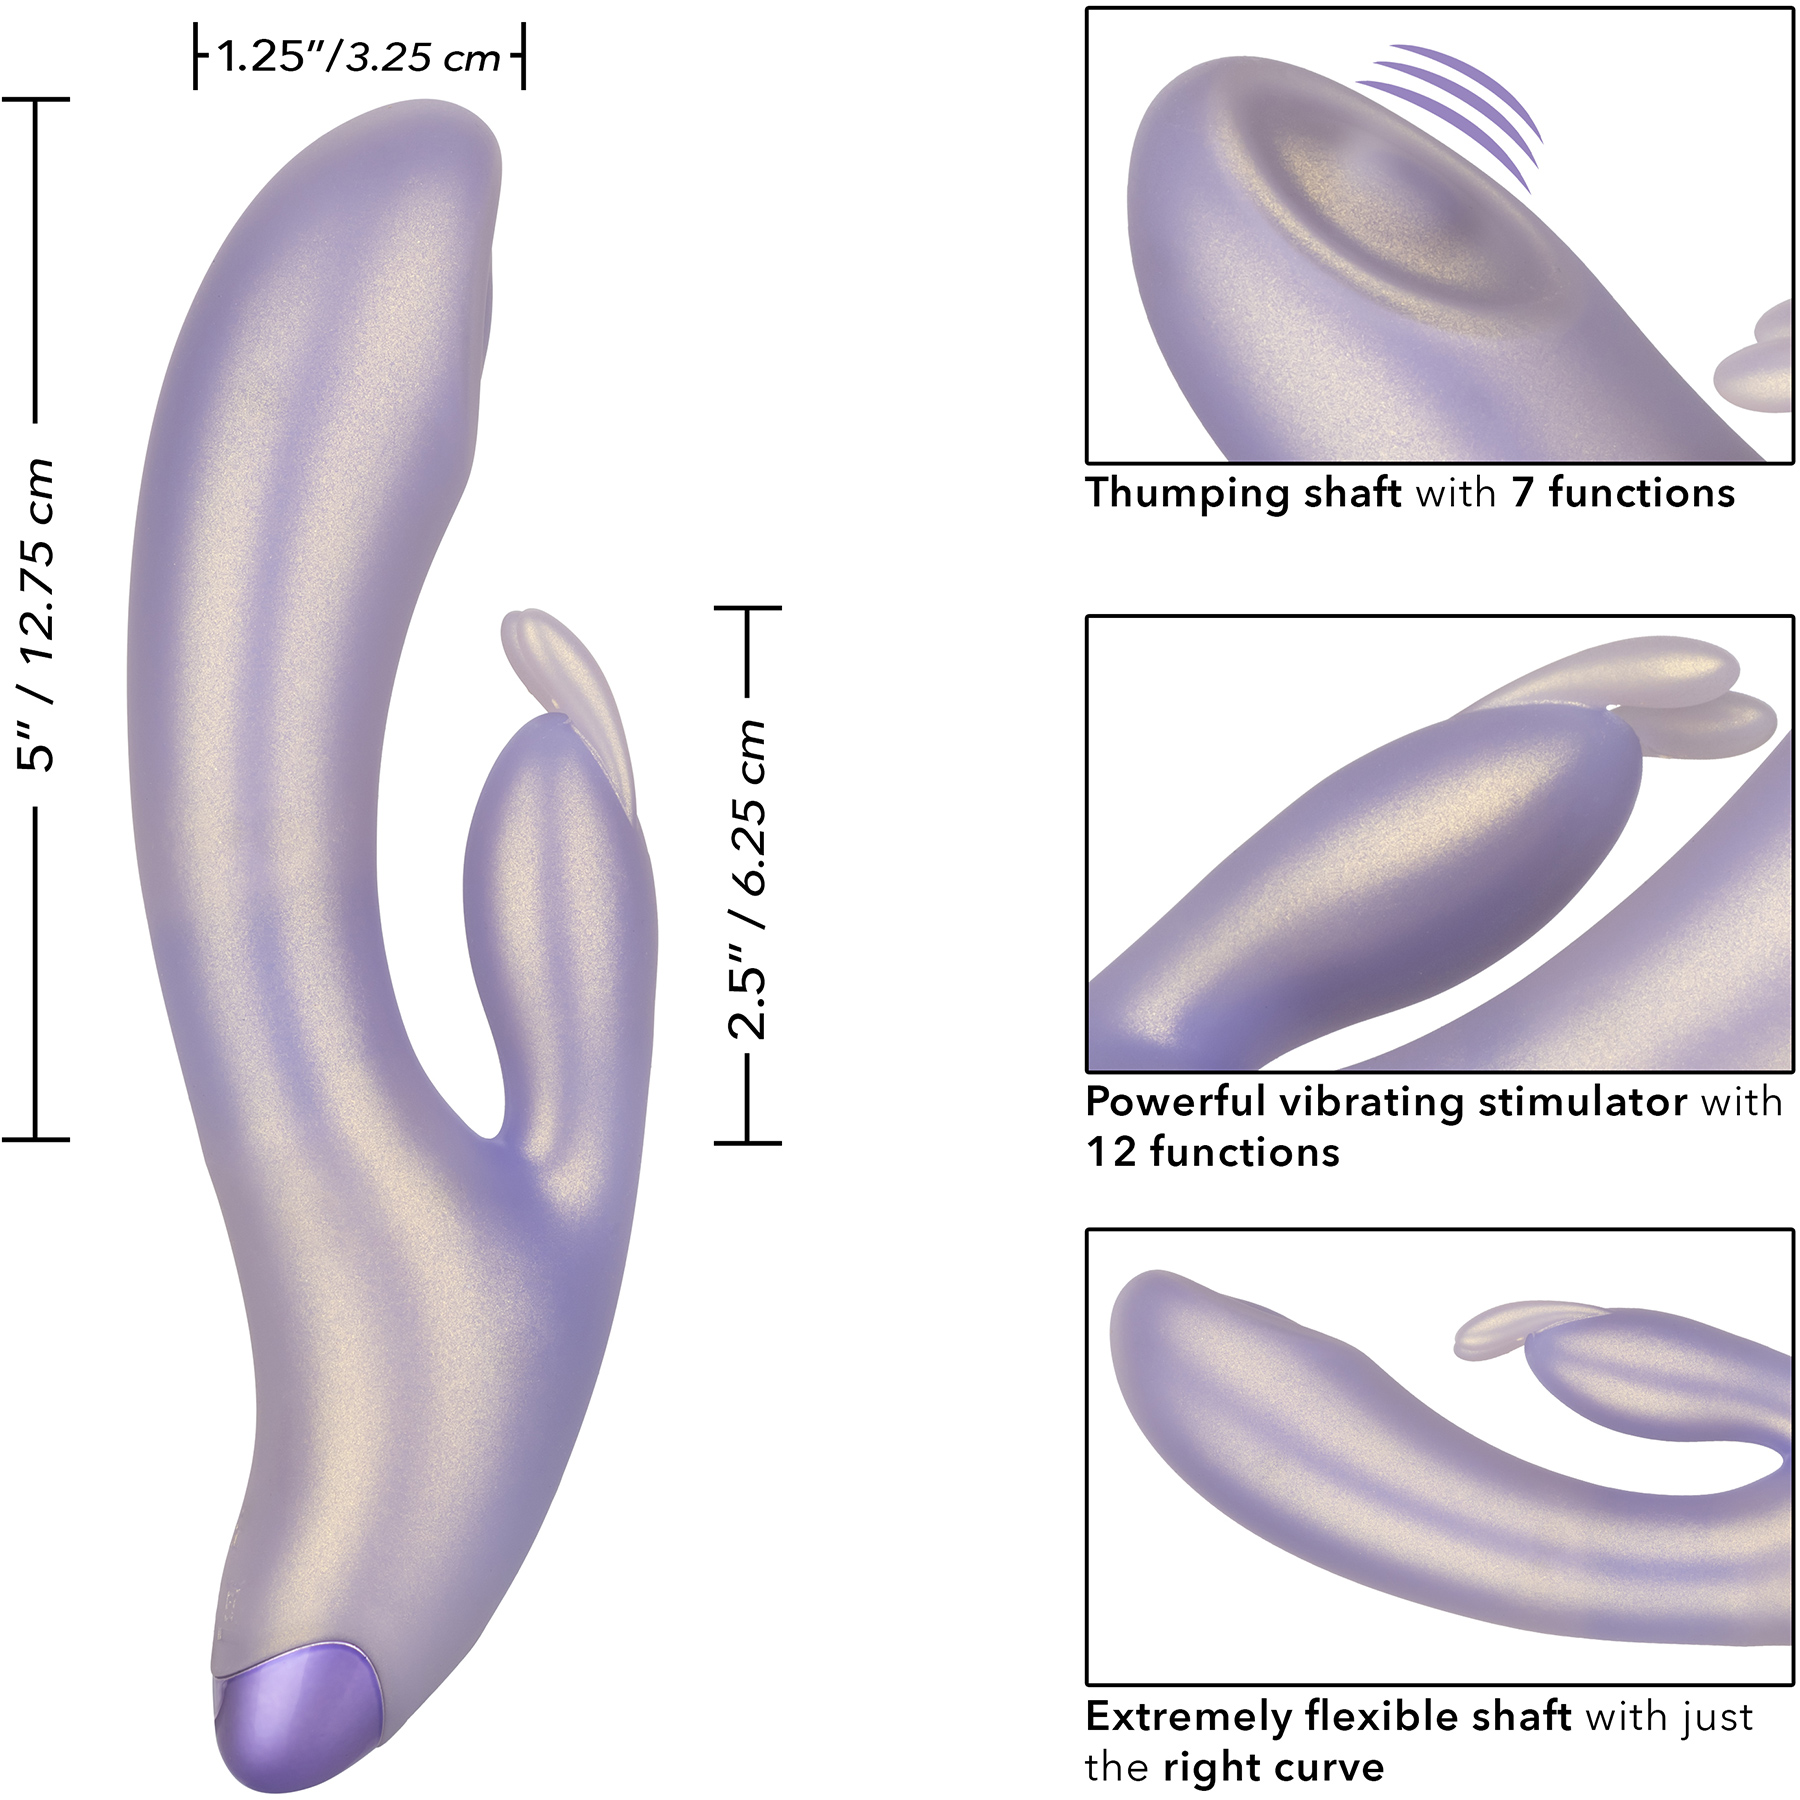 G-Love G-Bunny Silicone Rechargeable Waterproof Dual Stimulation Vibrator By CalExotics - Measurements